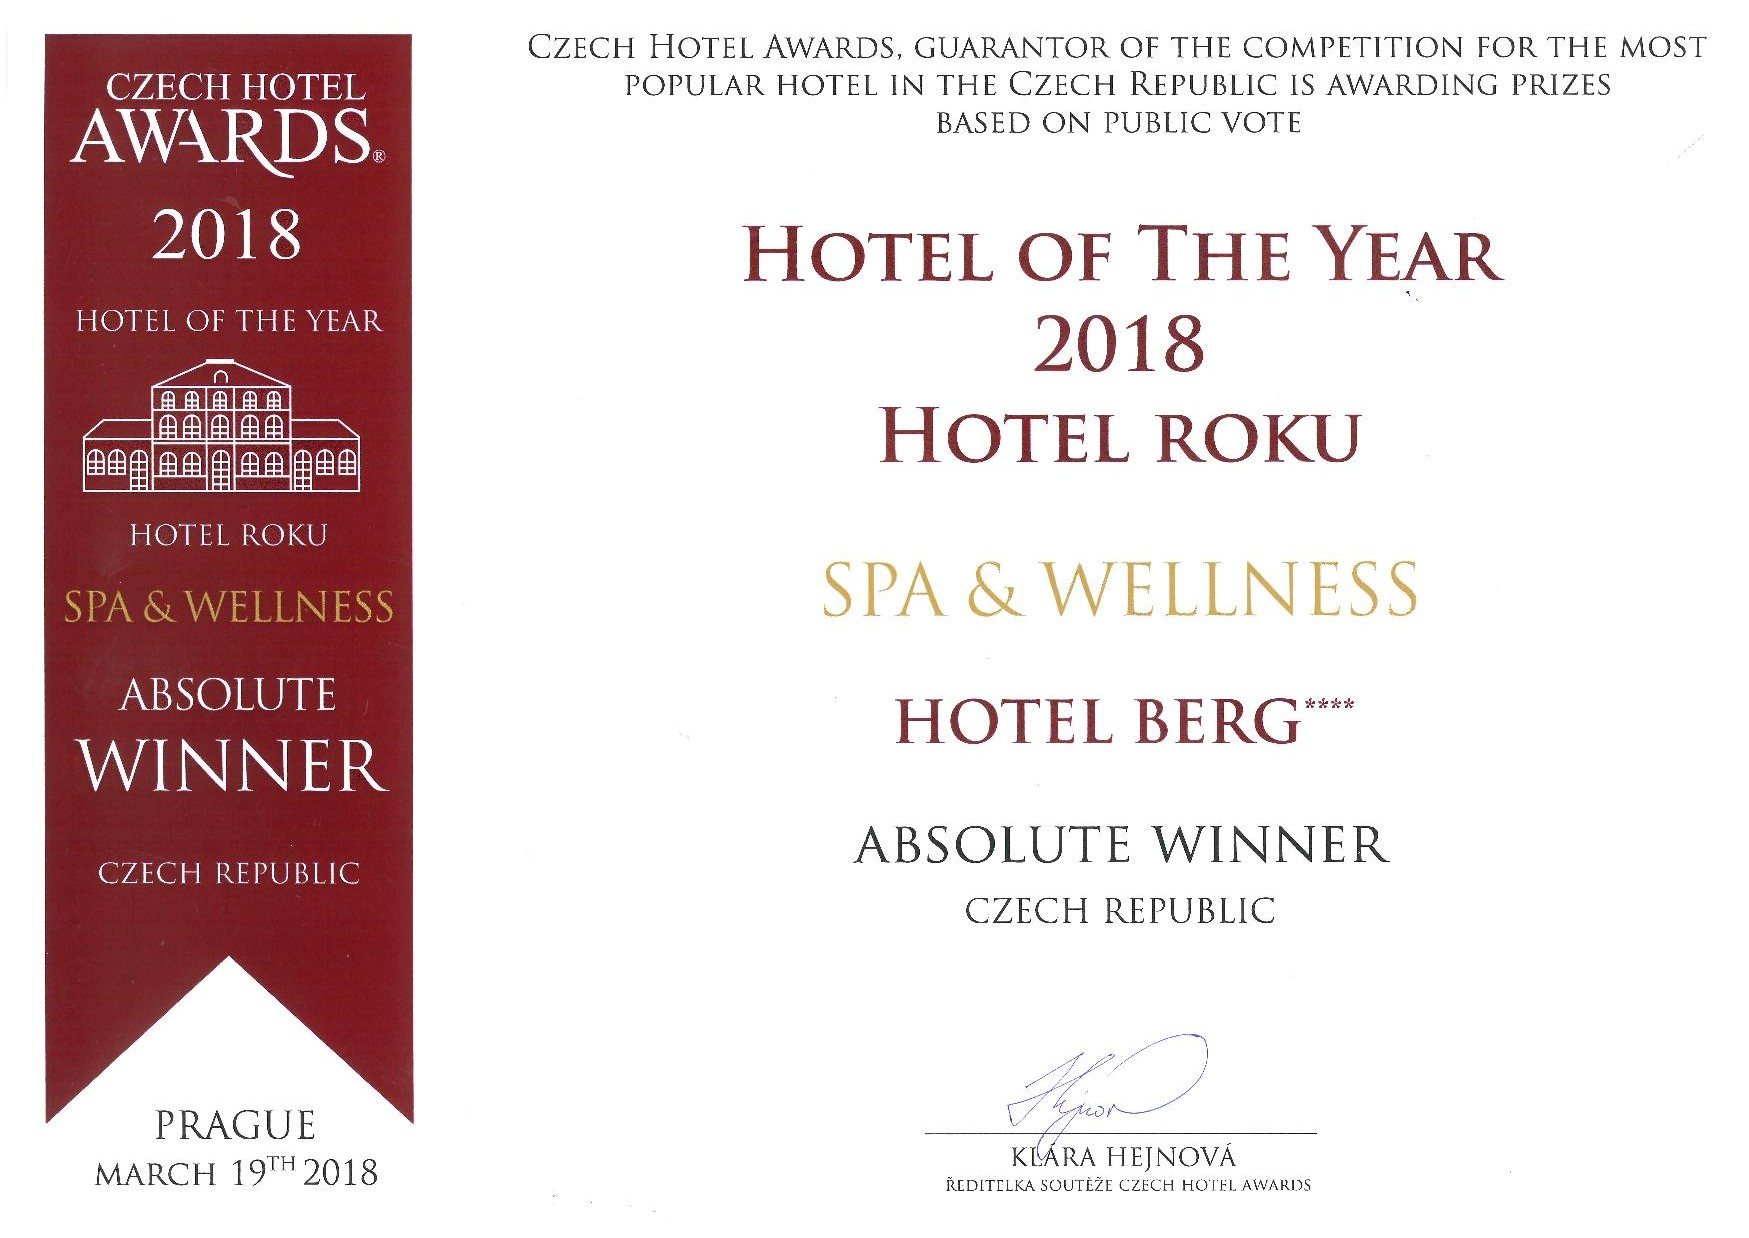 hotel berg AWARDS HOTEL SPA WELLNESS 2018